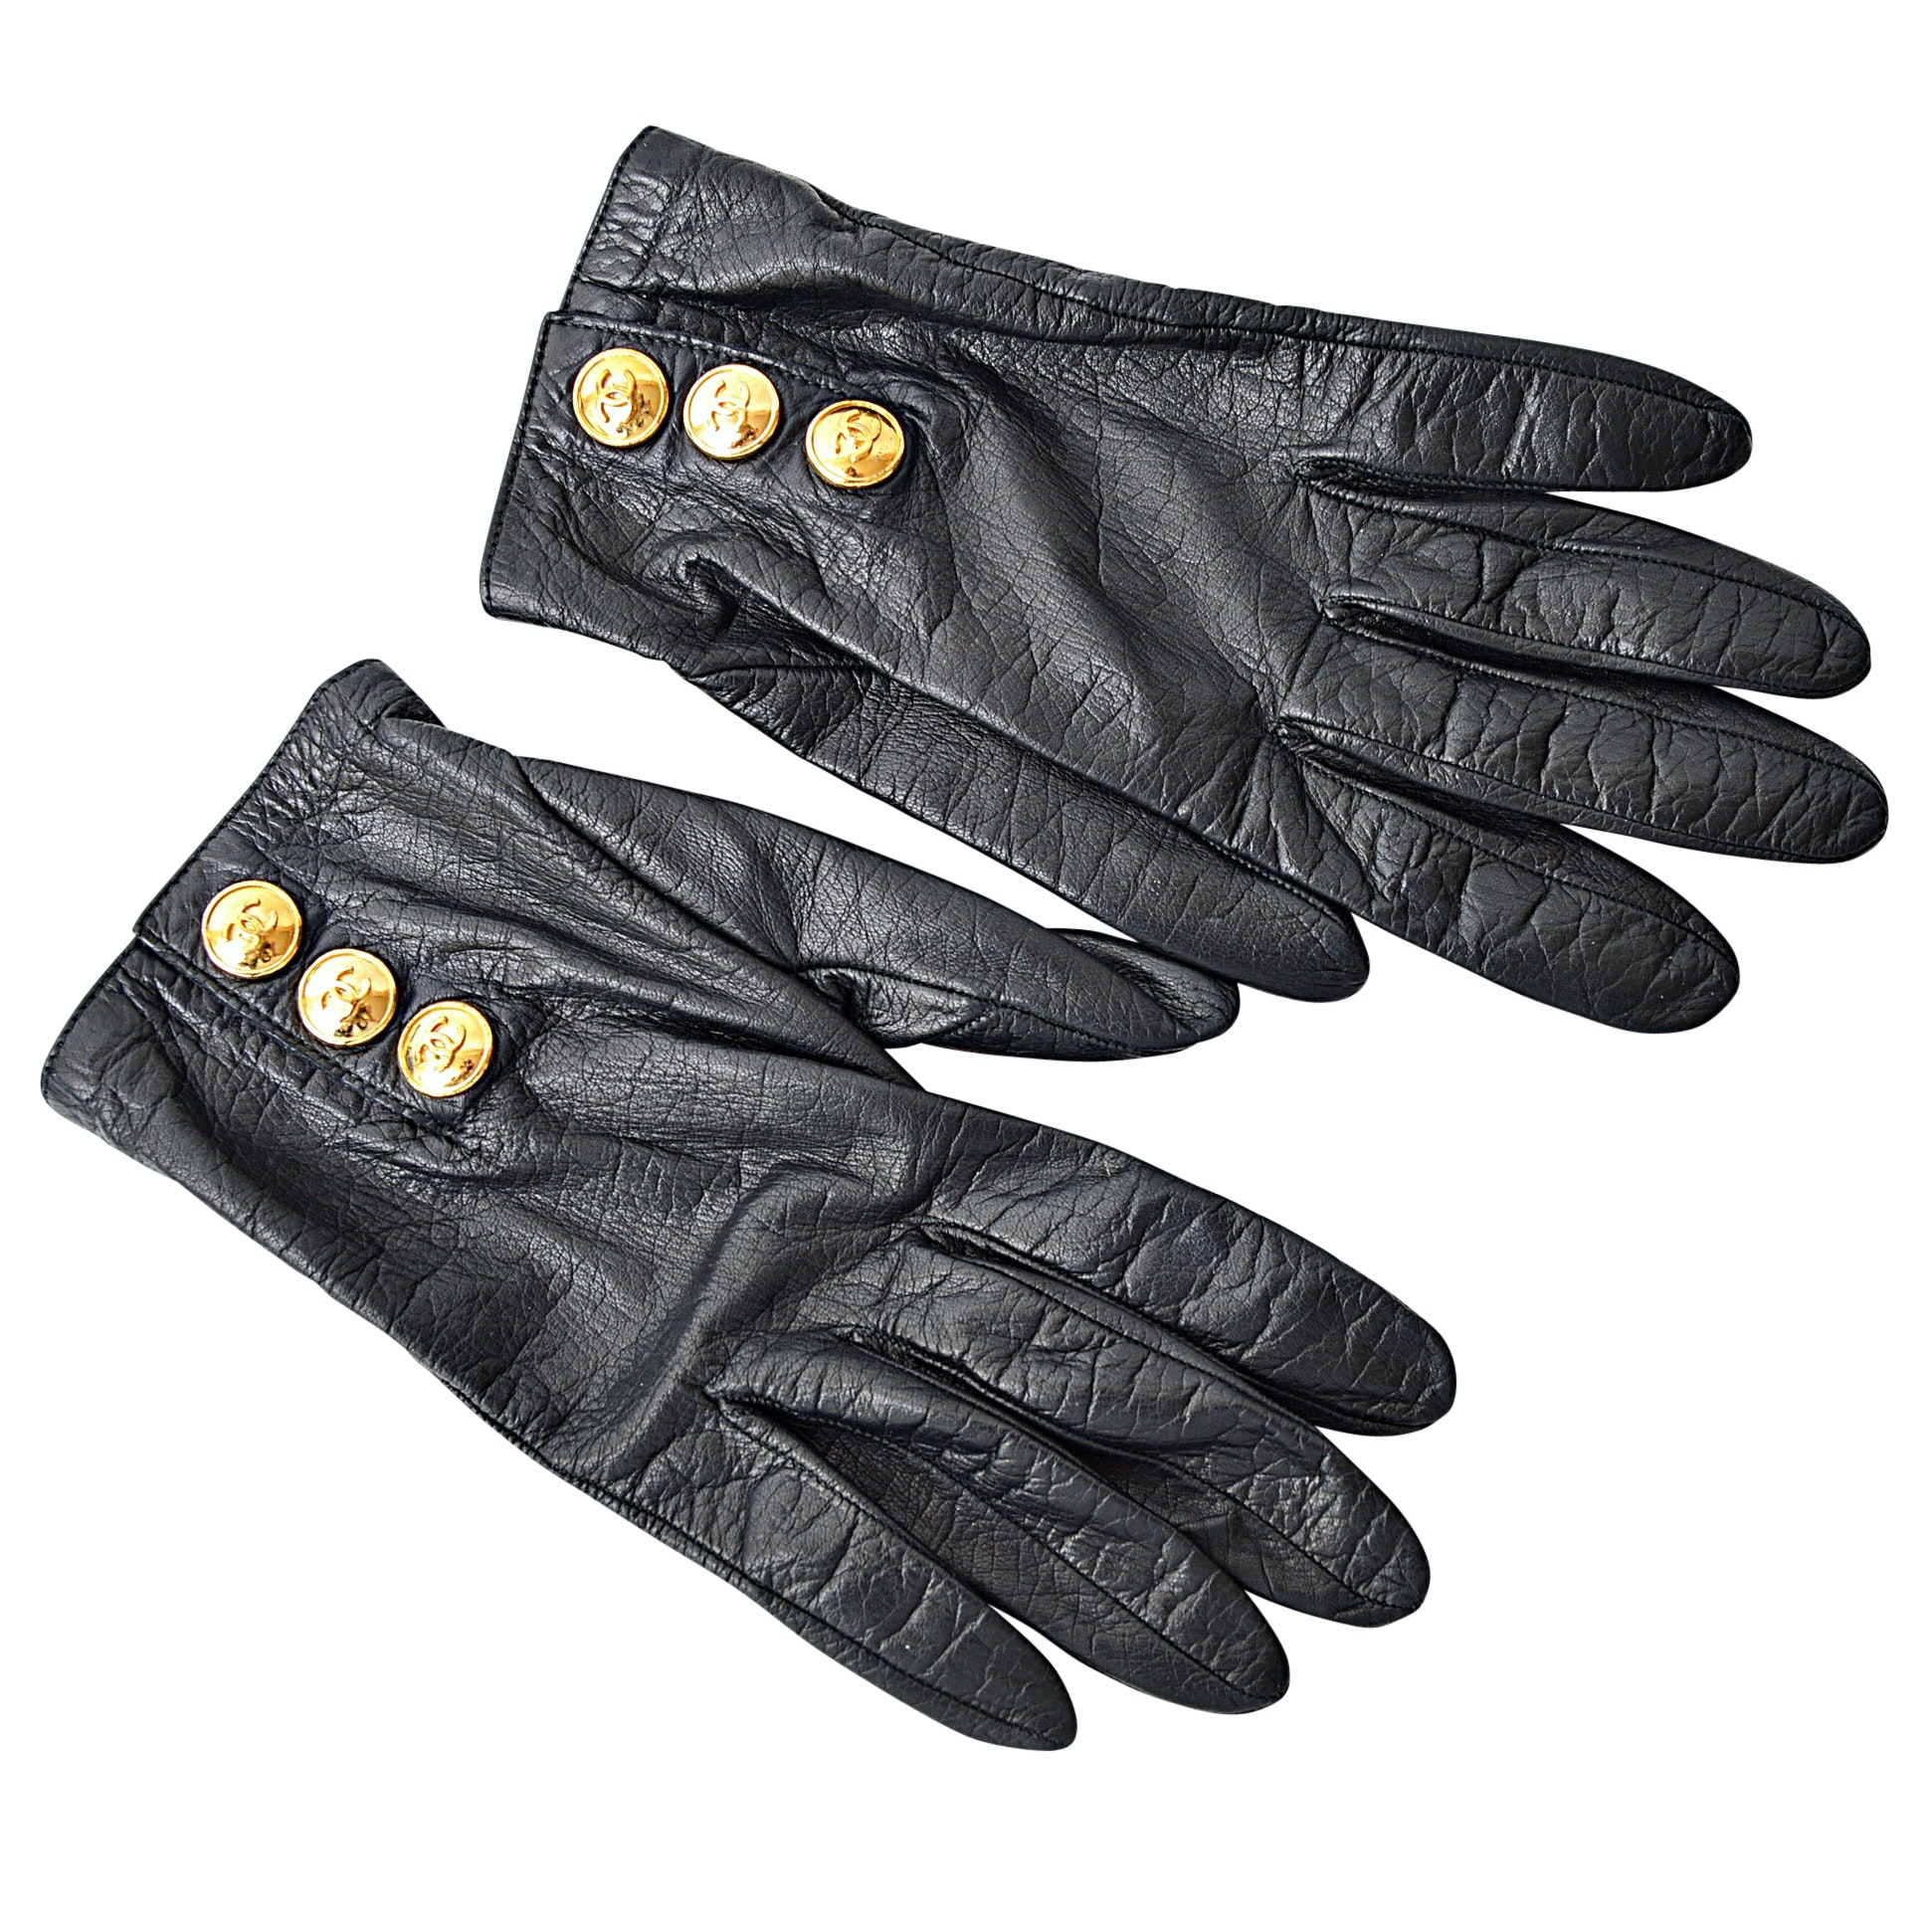 Vintage Chanel Black Leather Hand Gloves